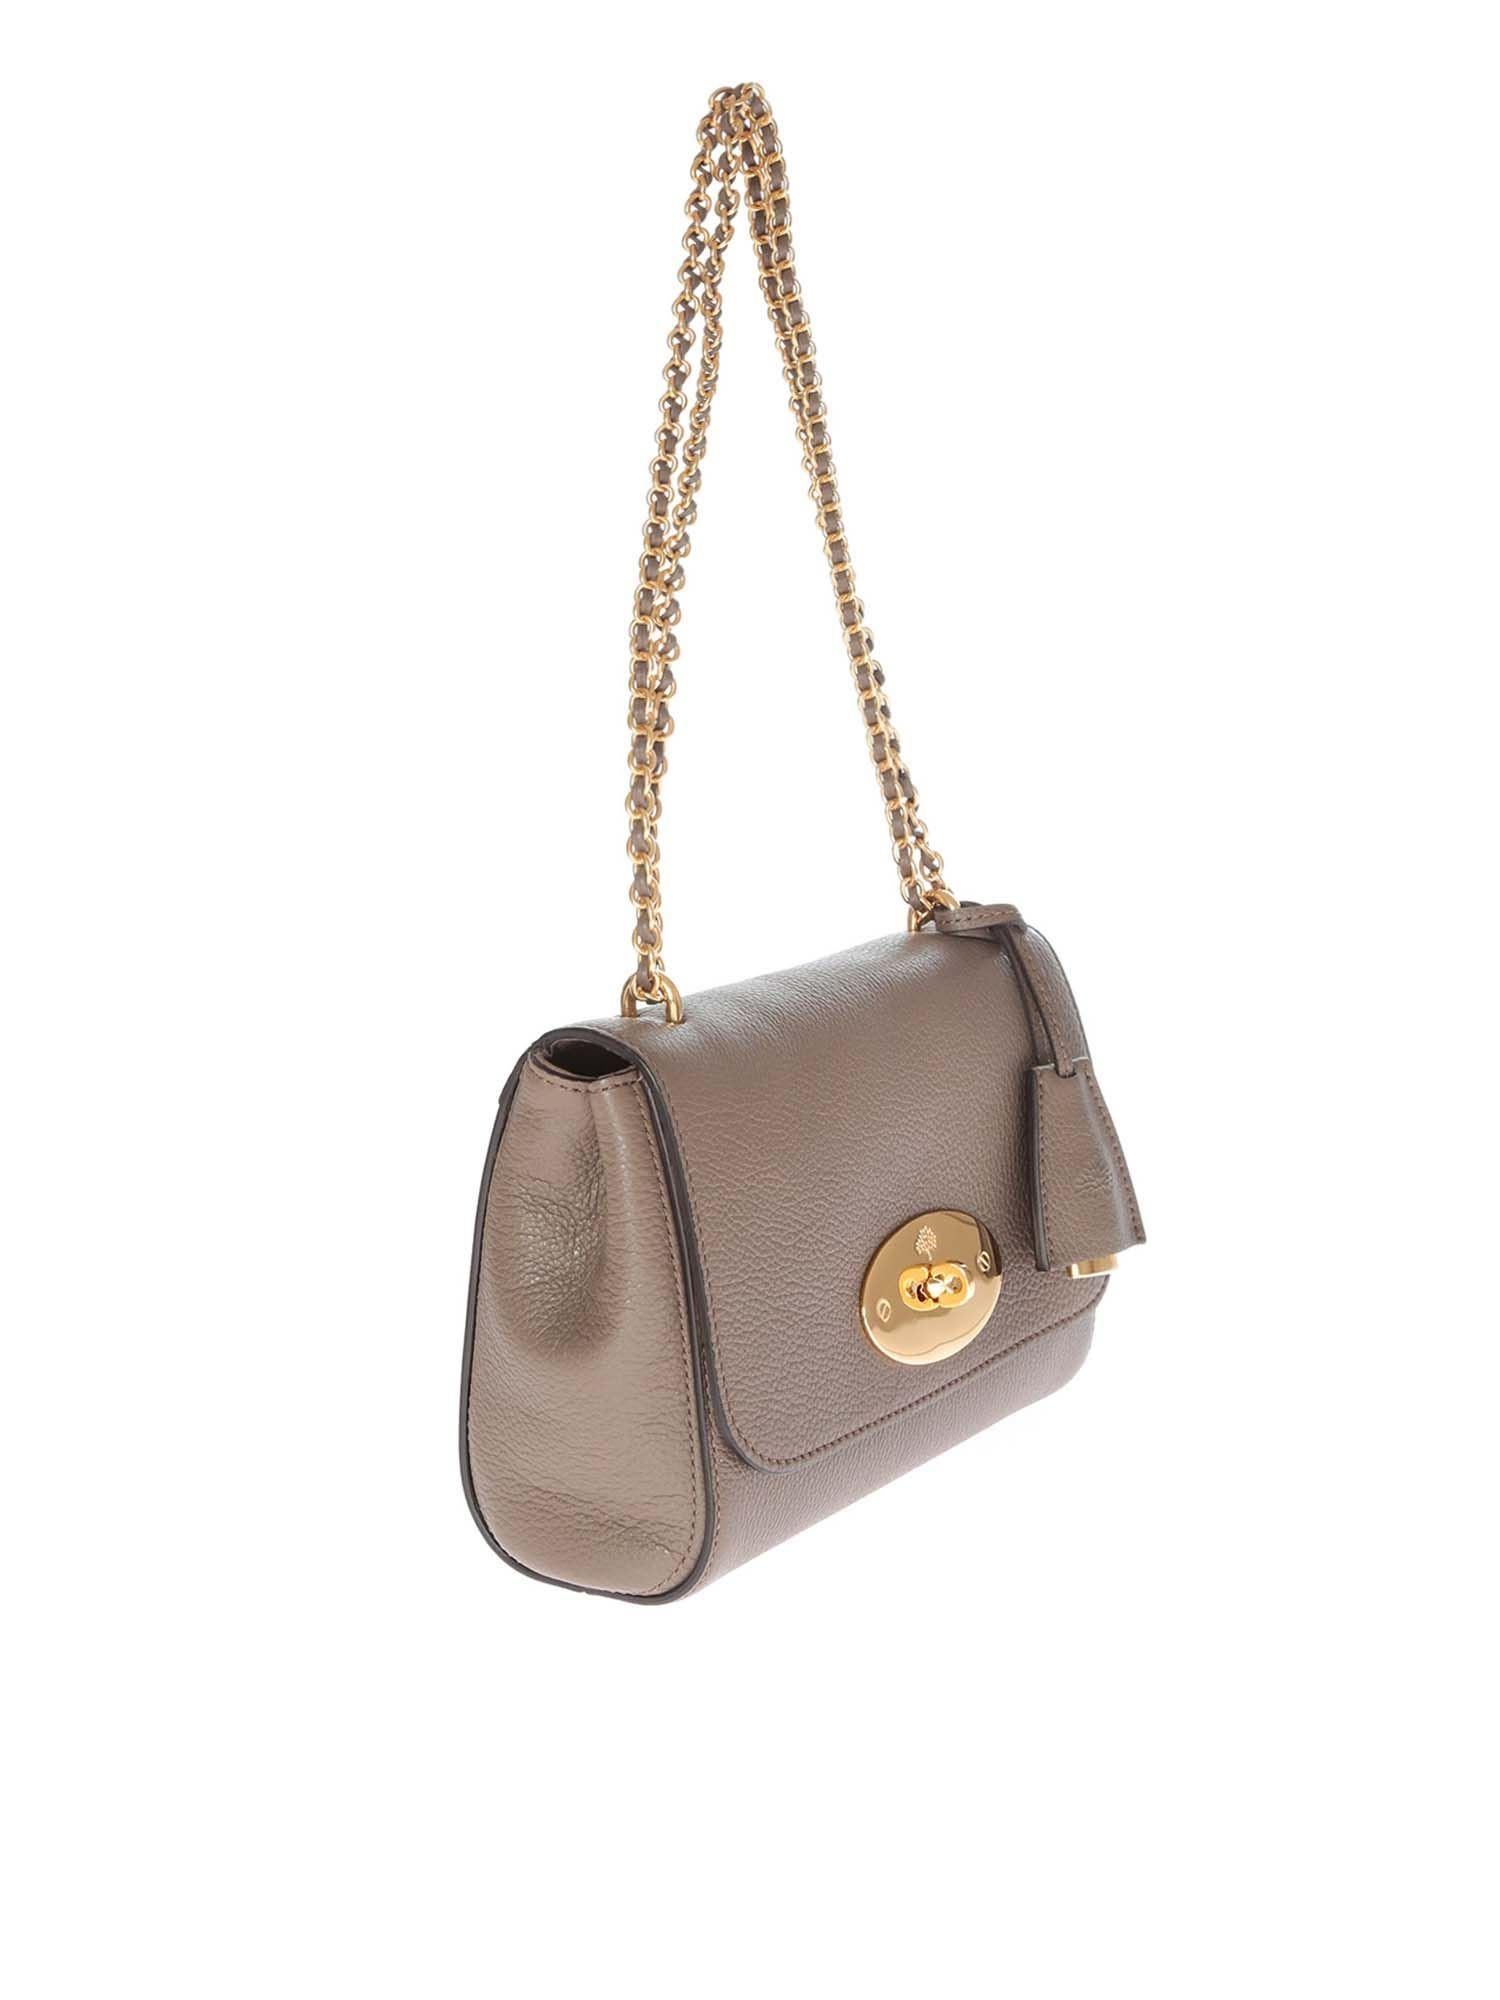 c4932ea27fa Lyst - Mulberry Lily Shoulder Bag In Clay Color